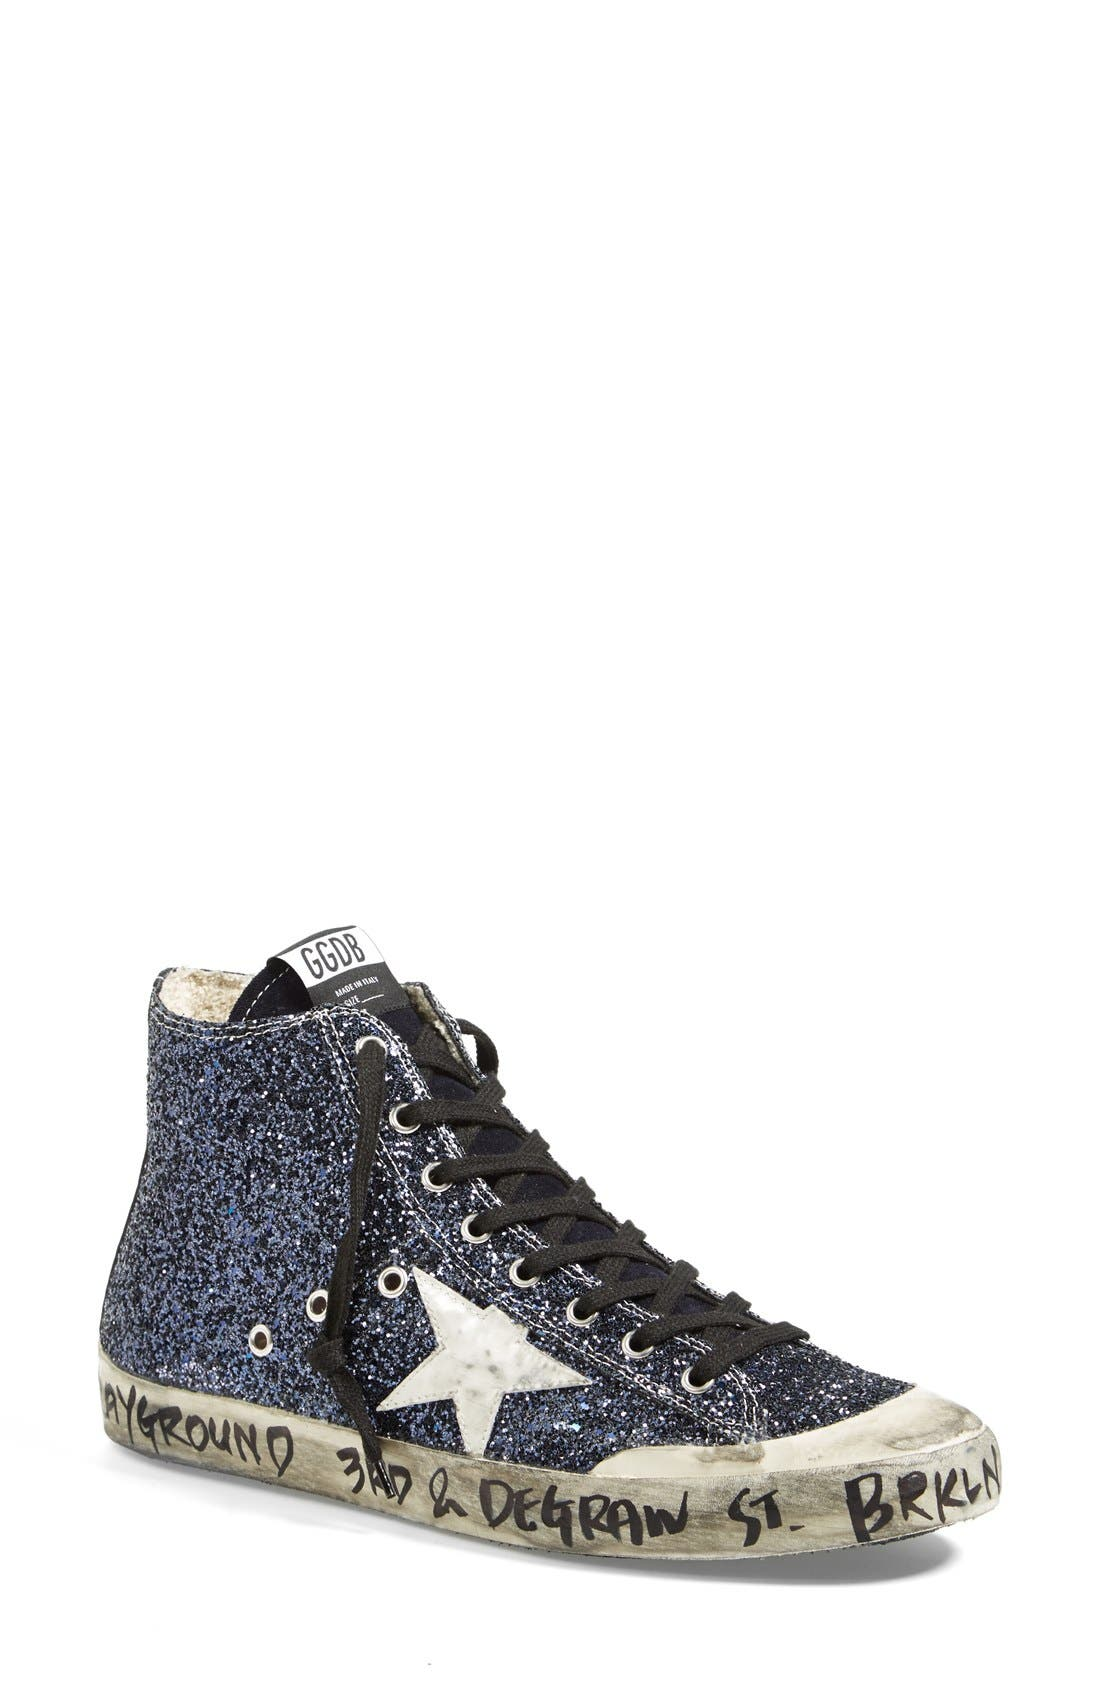 Main Image - Golden Goose 'Francy' Sneaker (Women)